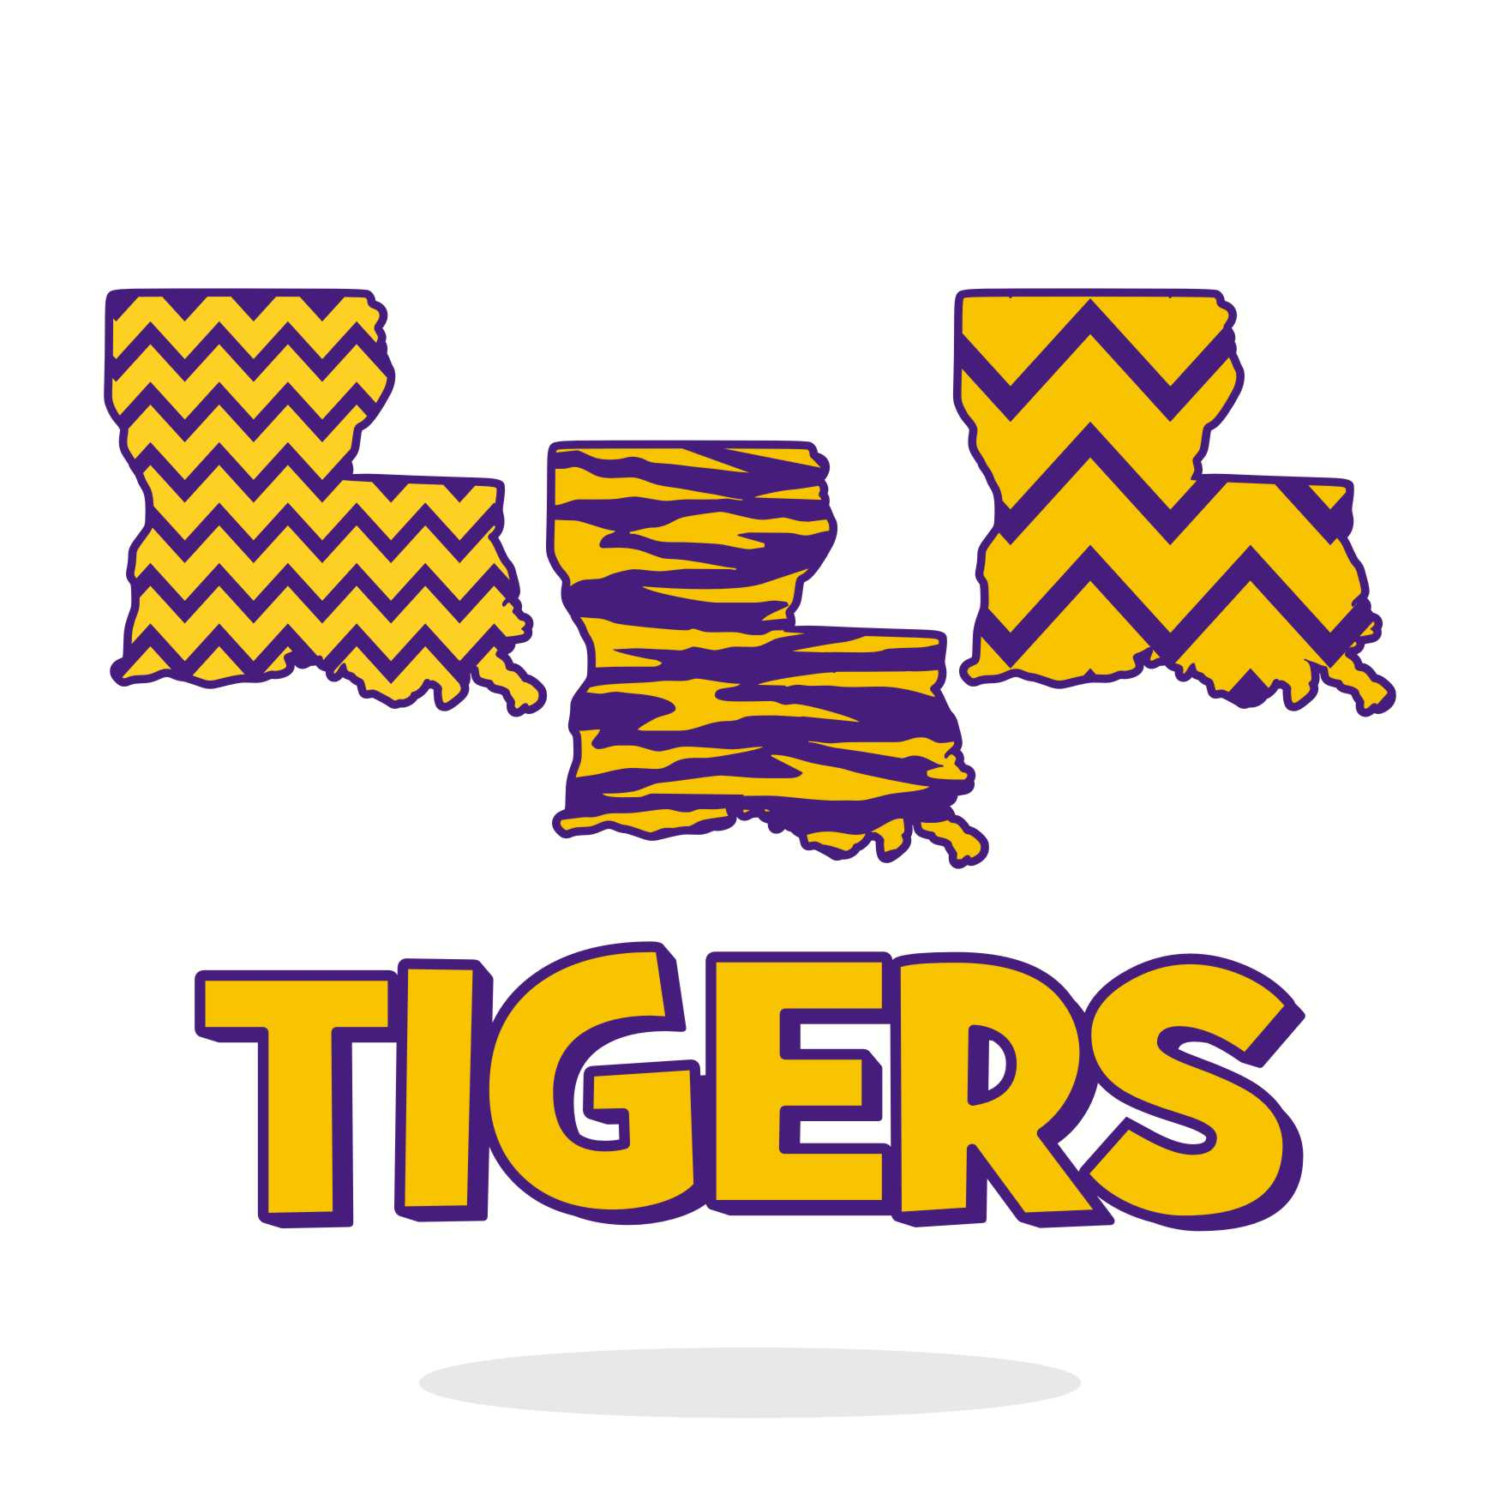 Free Lsu Clipart, Download Free Clip Art, Free Clip Art on.